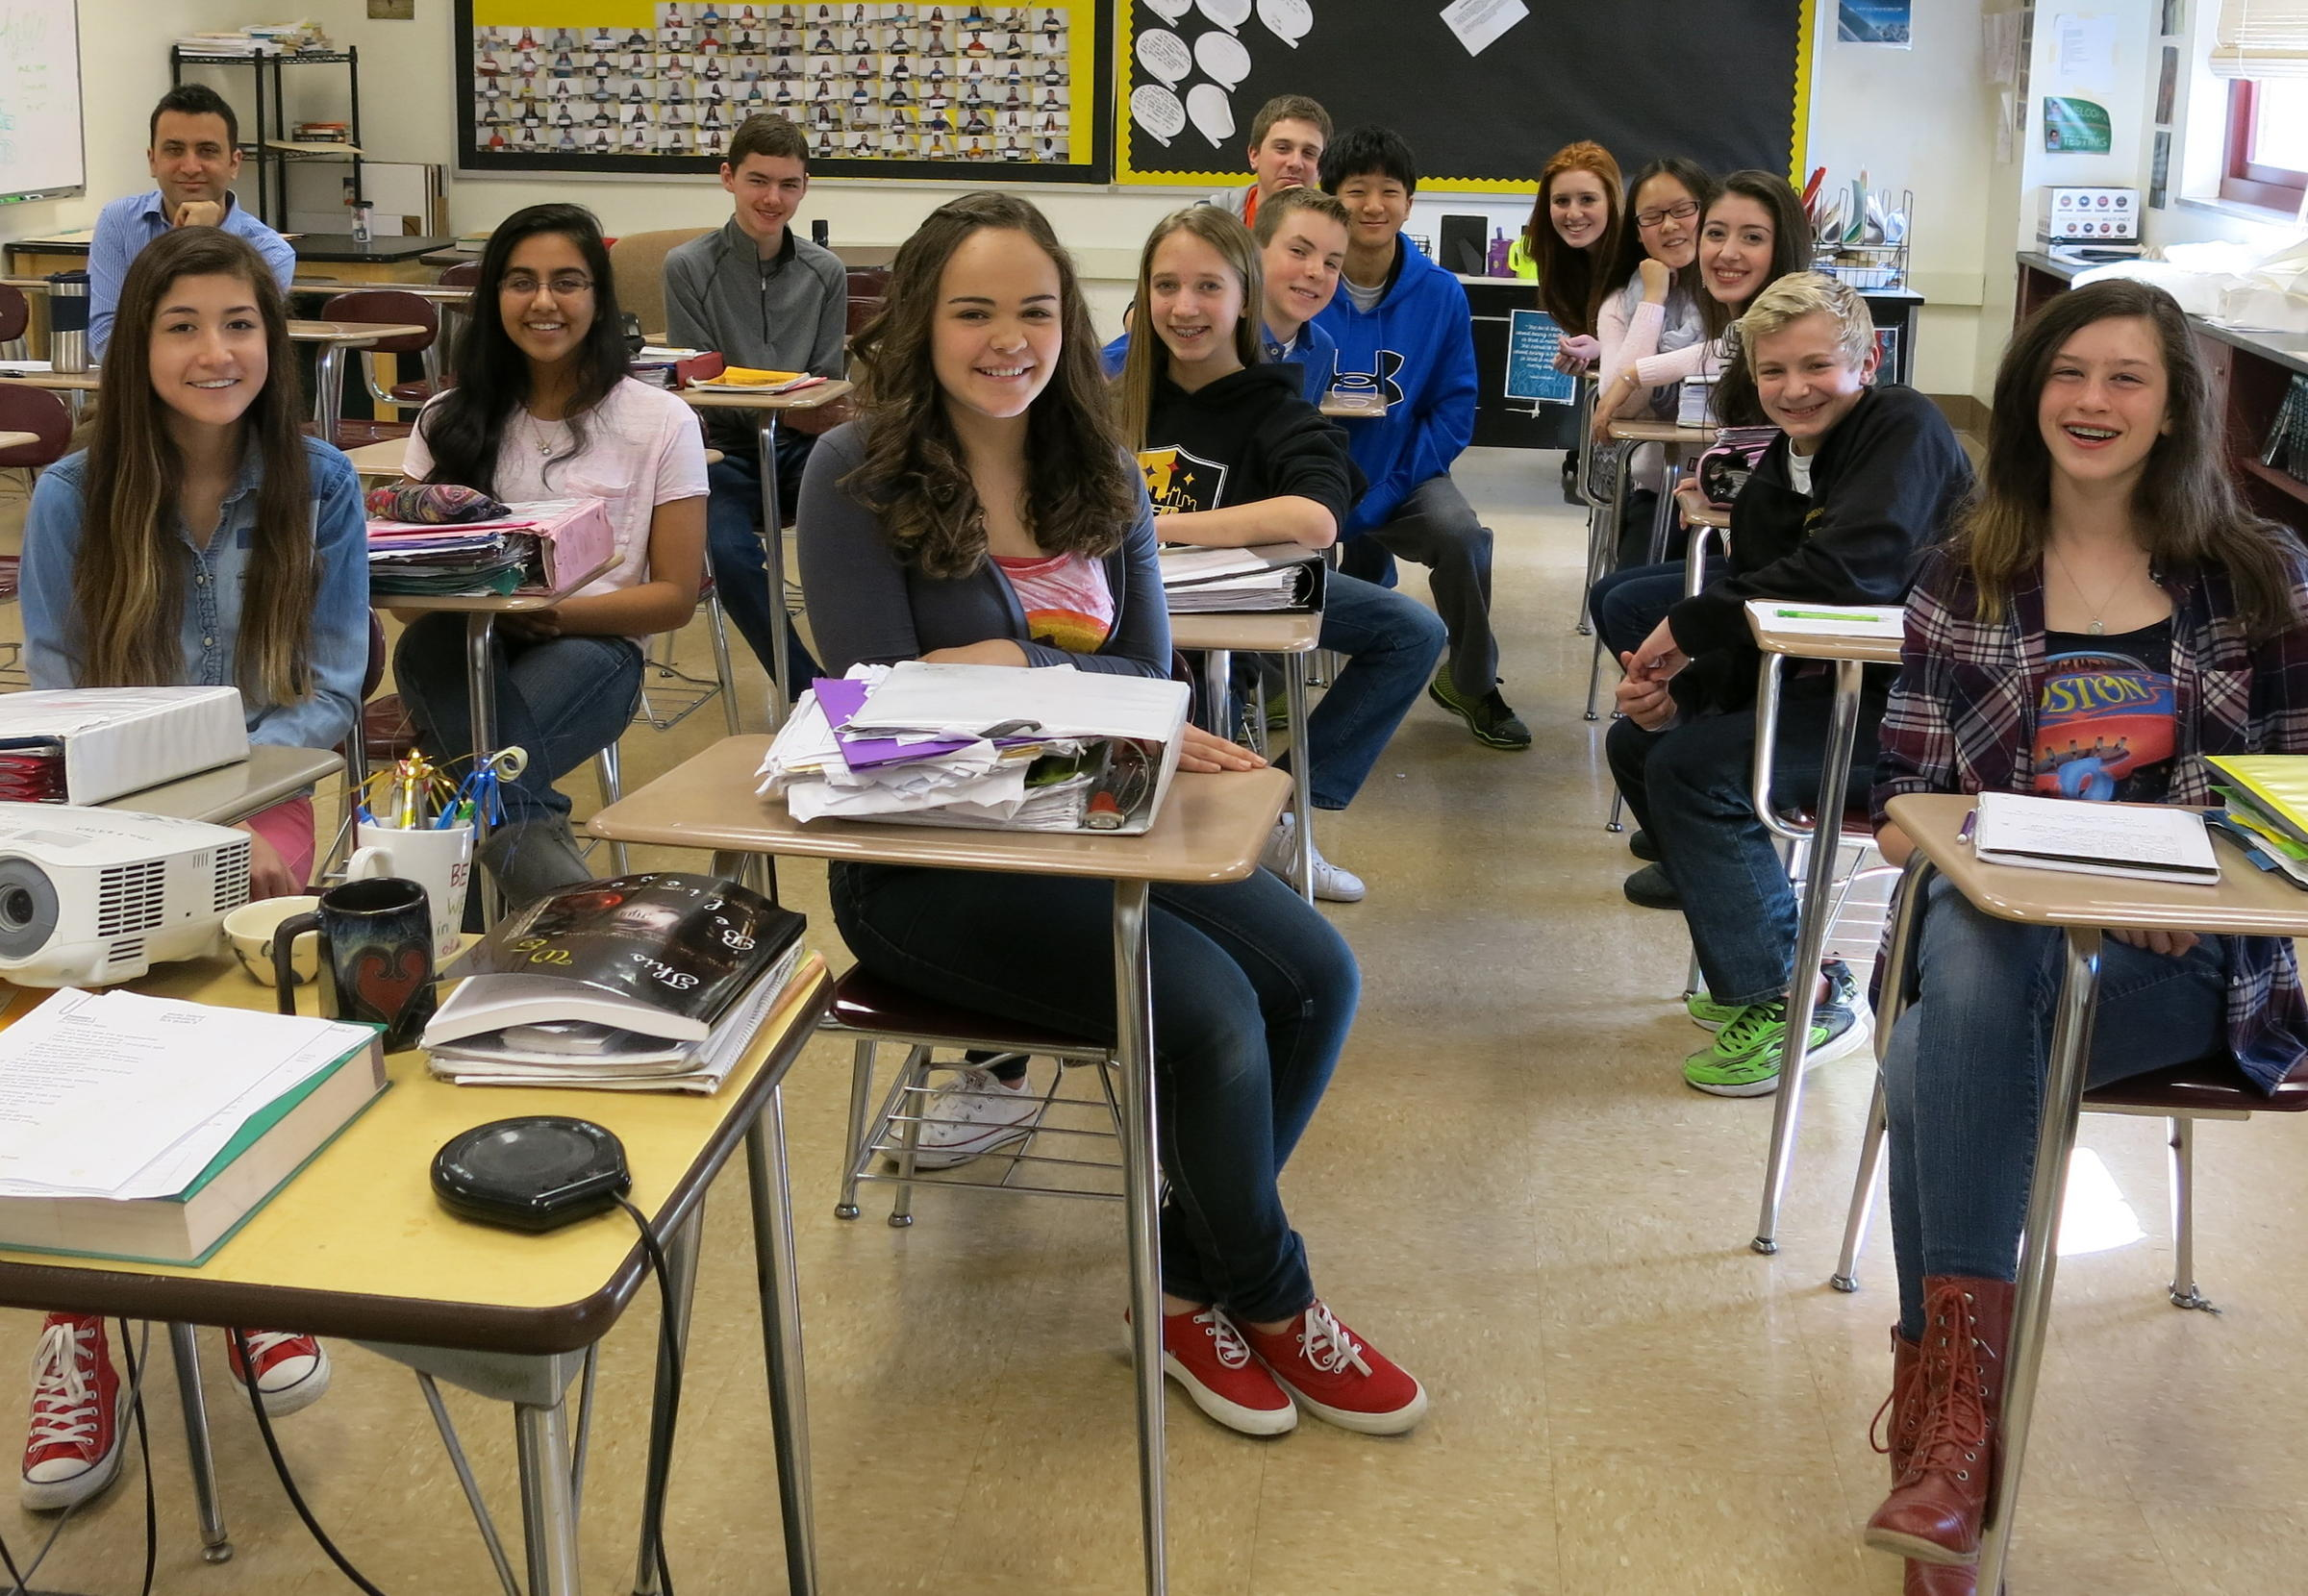 ... : Eighth Grade Class's Take on Iconic Radio Essay Series | 90.5 WESA